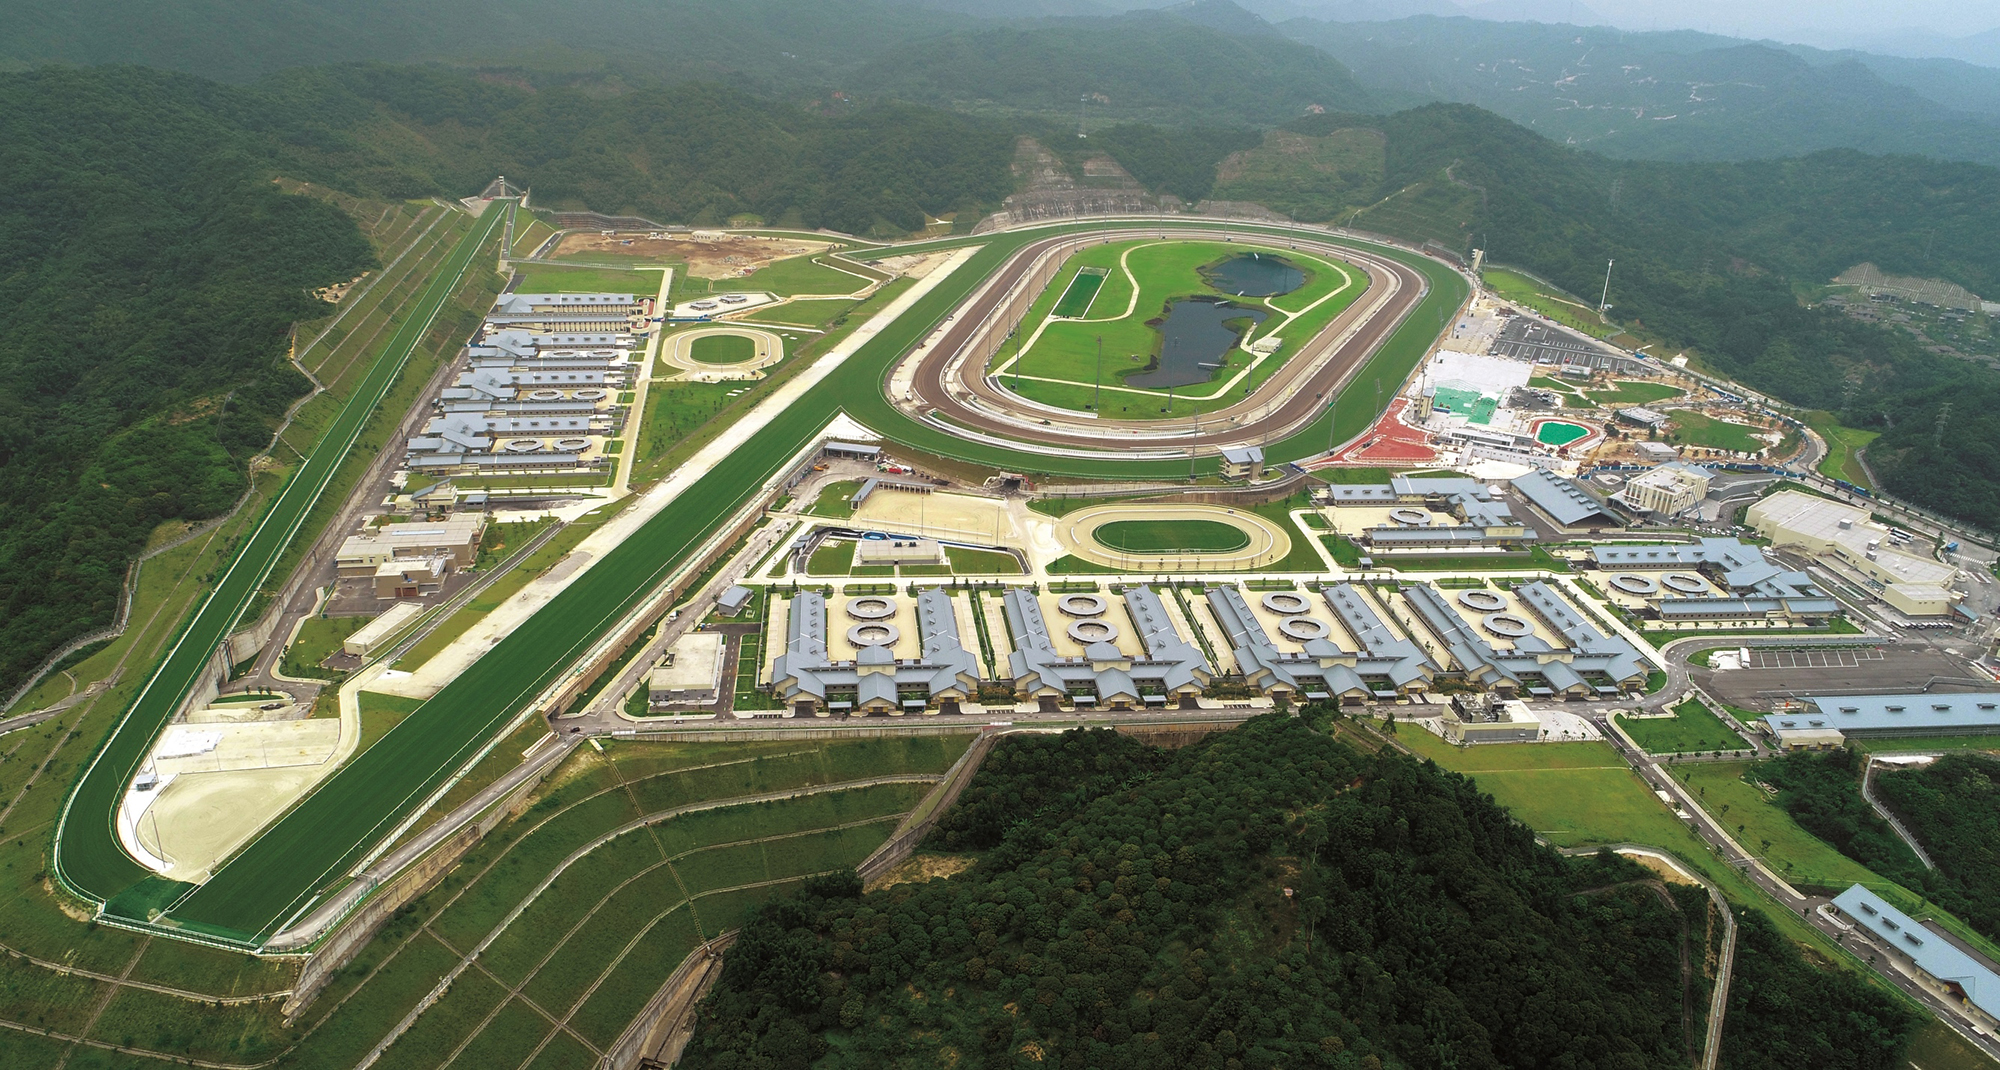 CRC will serve as a world-class facility for the training of Hong Kong's racehorses.